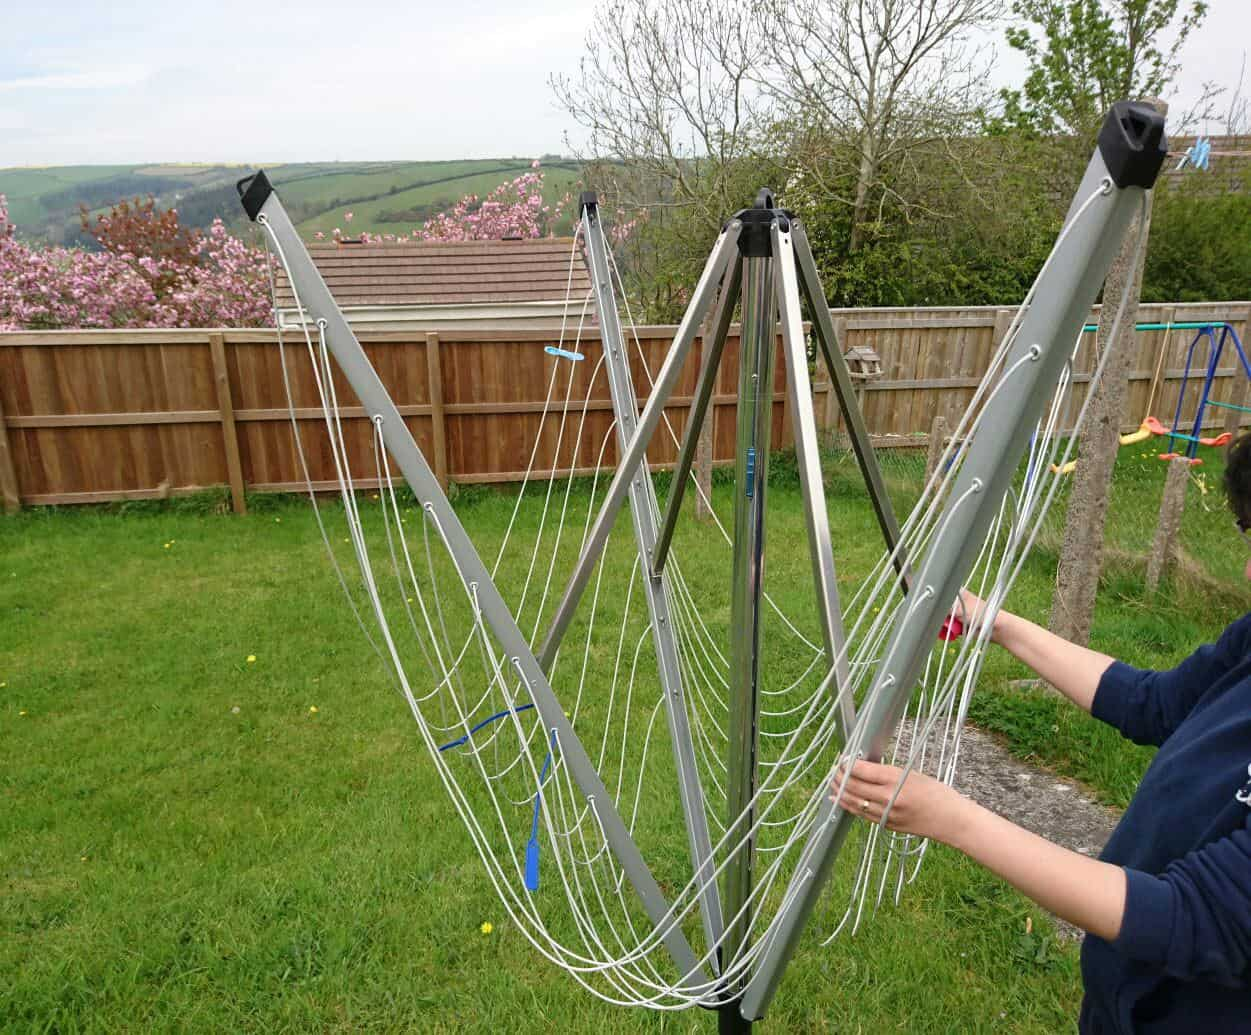 Alfresco activities - laundry with the brabantia rotary clothes drier